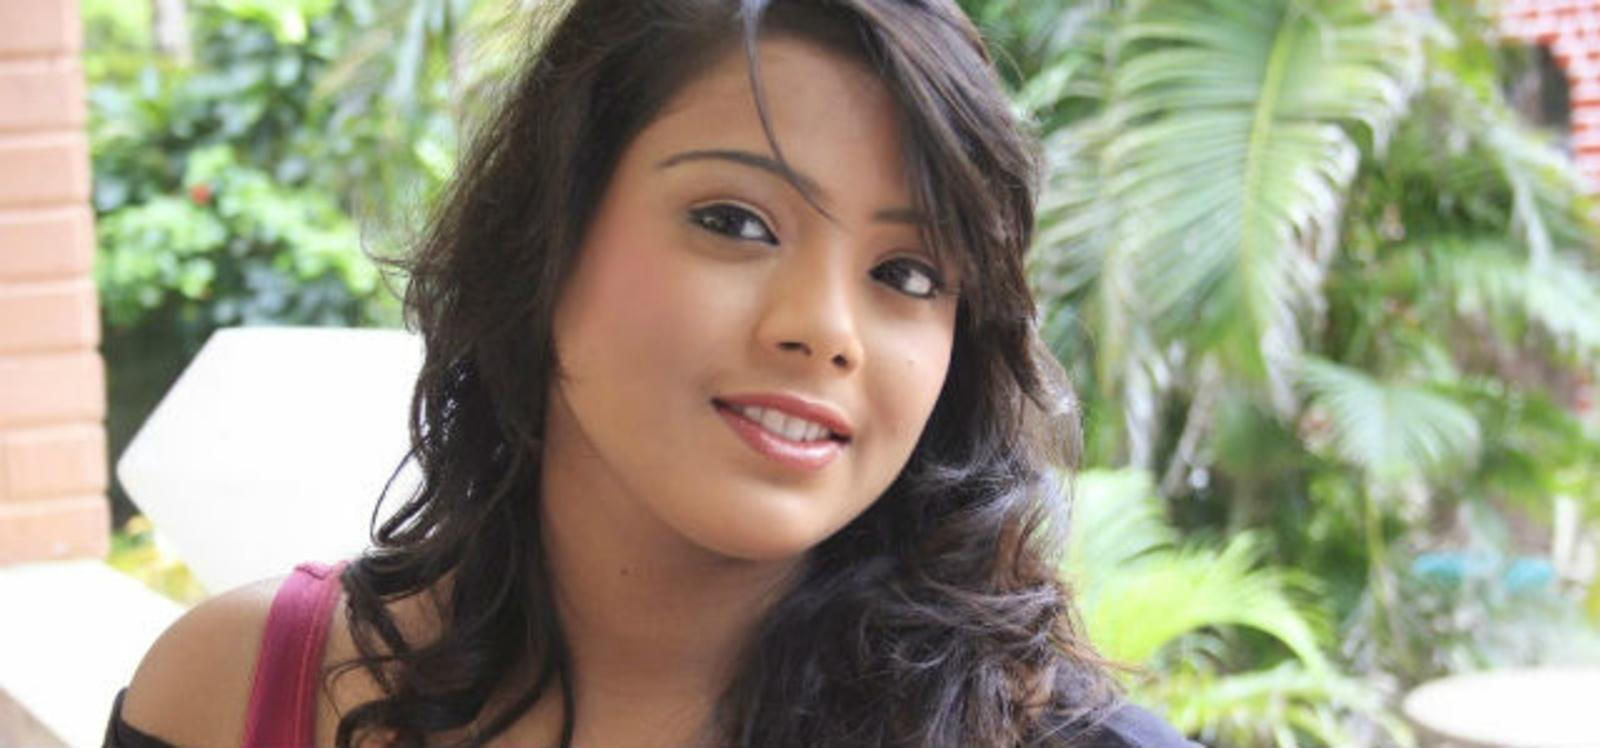 Bhojpuri Hot Sexy Photos Of Actresses Images Pictures Wallpapers Photo Gallery